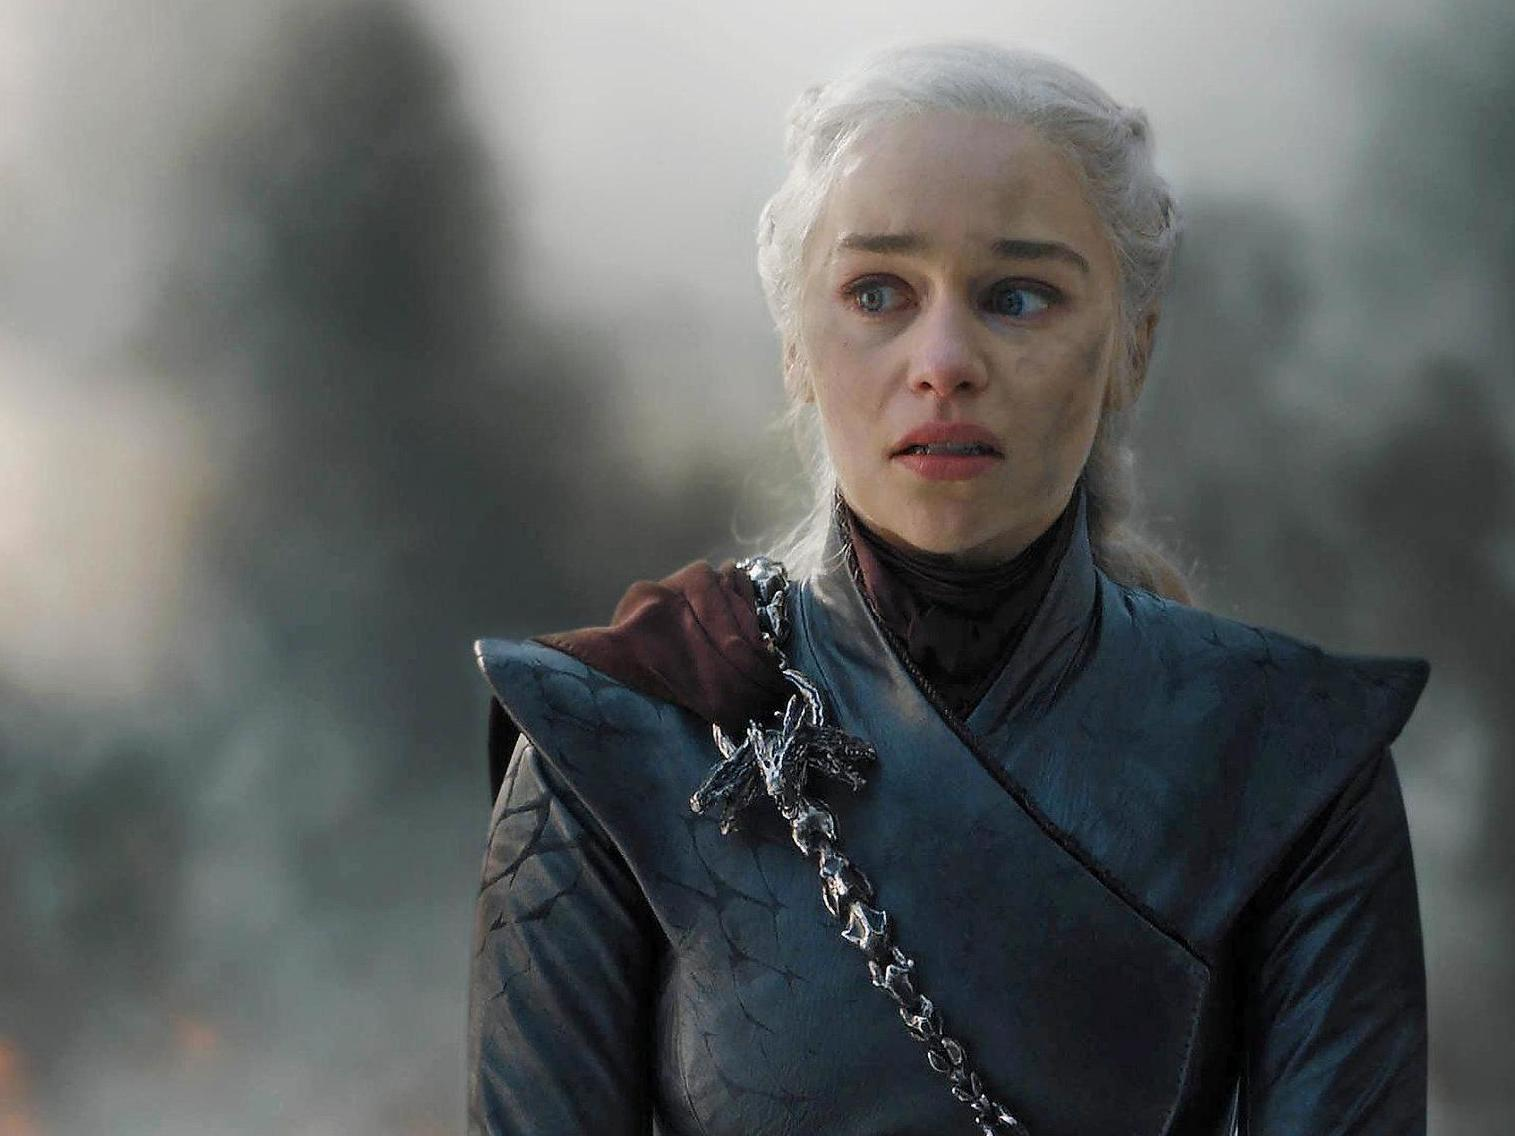 Game of Thrones fans remember most divisive episode one year on: 'I'm still not over it'